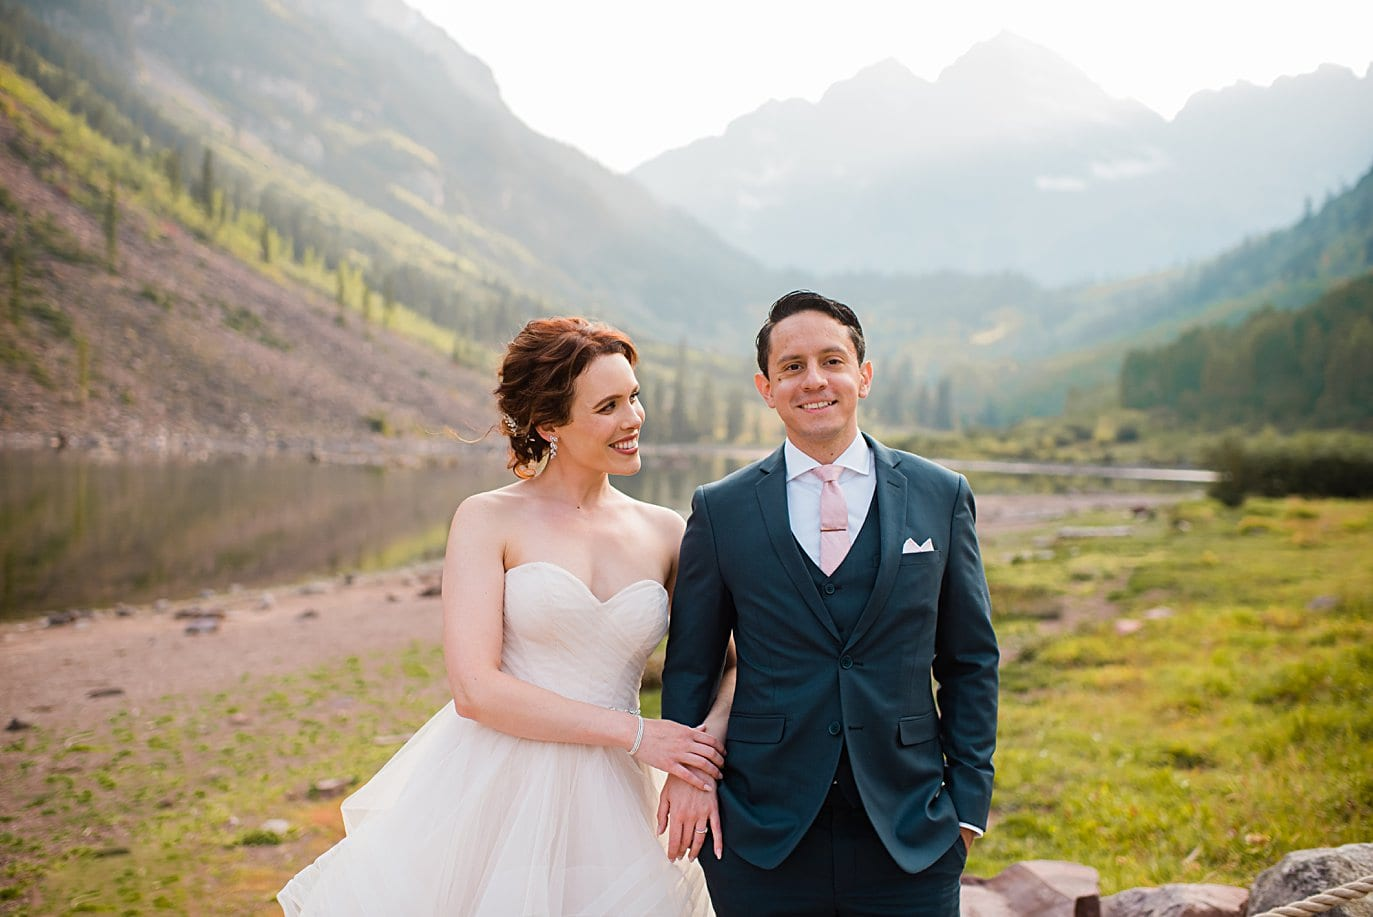 bride and groom in front of Maroon Lake at fall Maroon Bells wedding by Aspen wedding photographer Jennie Crate